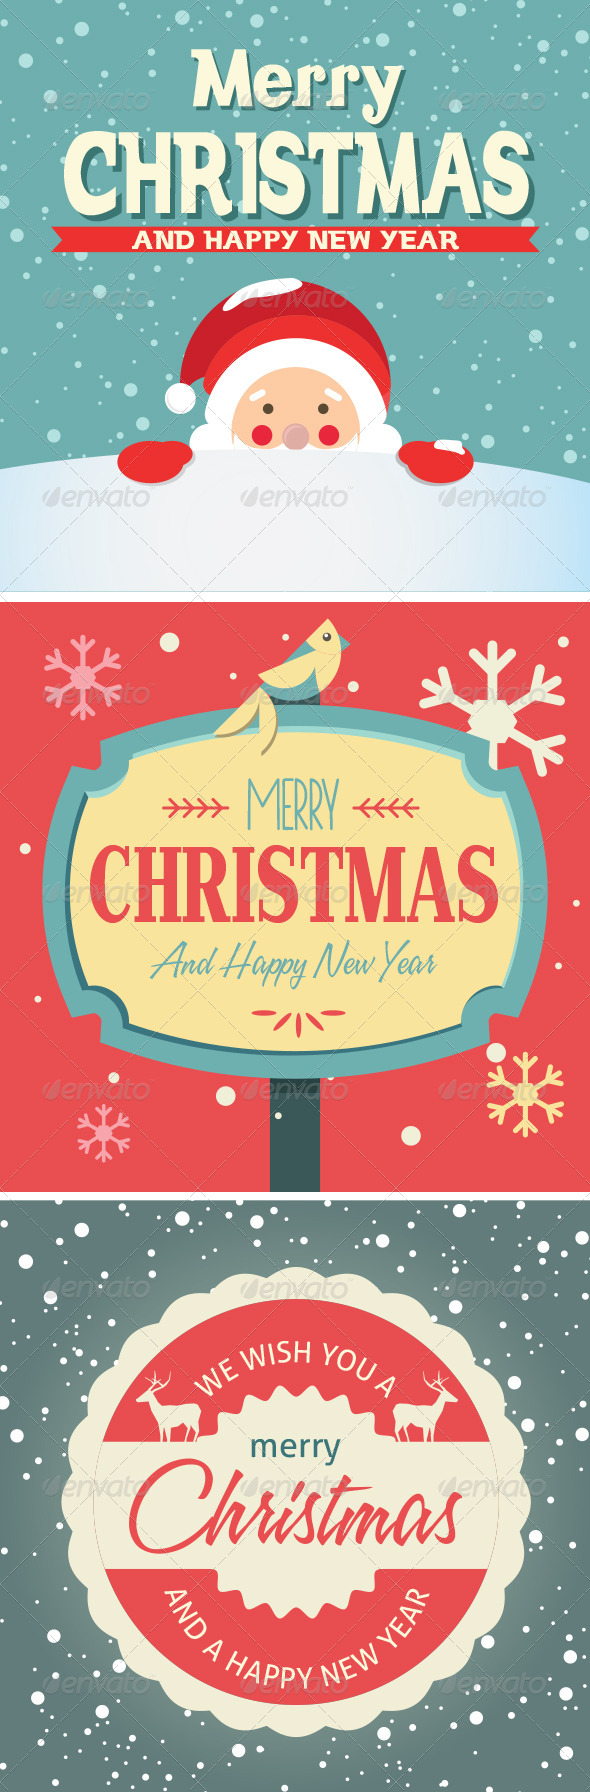 GraphicRiver Vector Elements for Christmas Cards 6280977